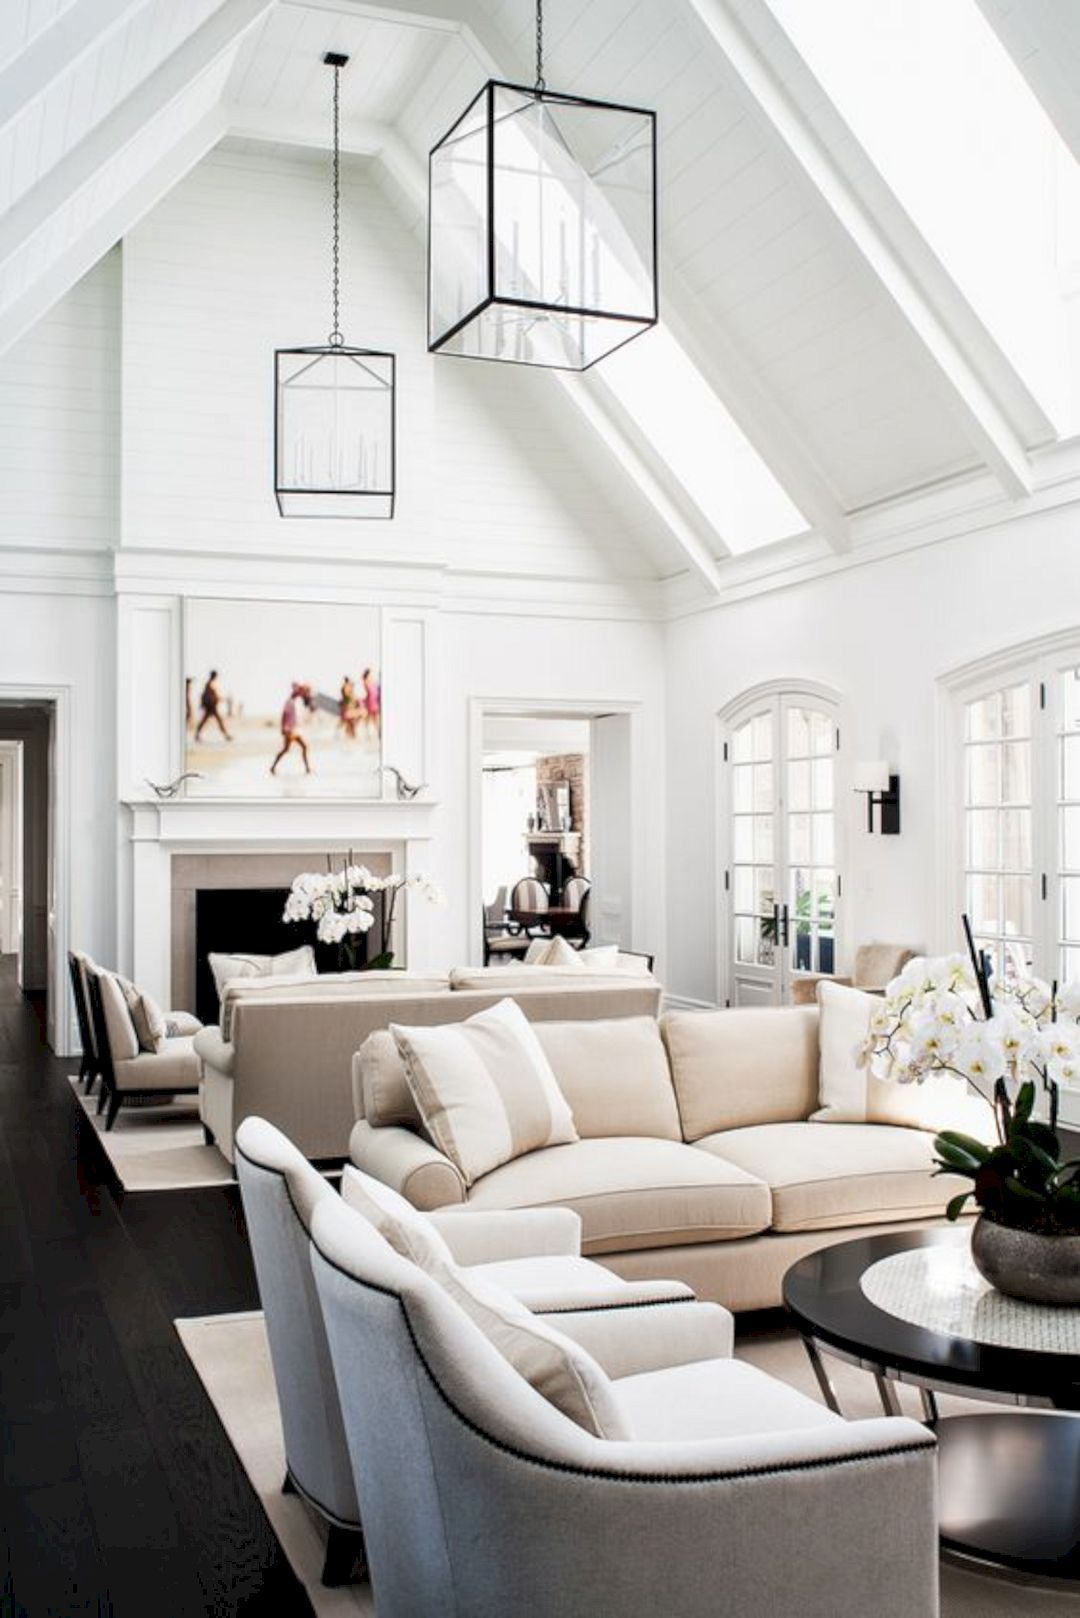 15 Interior Design Ideas To Spruce Up Your Large Living